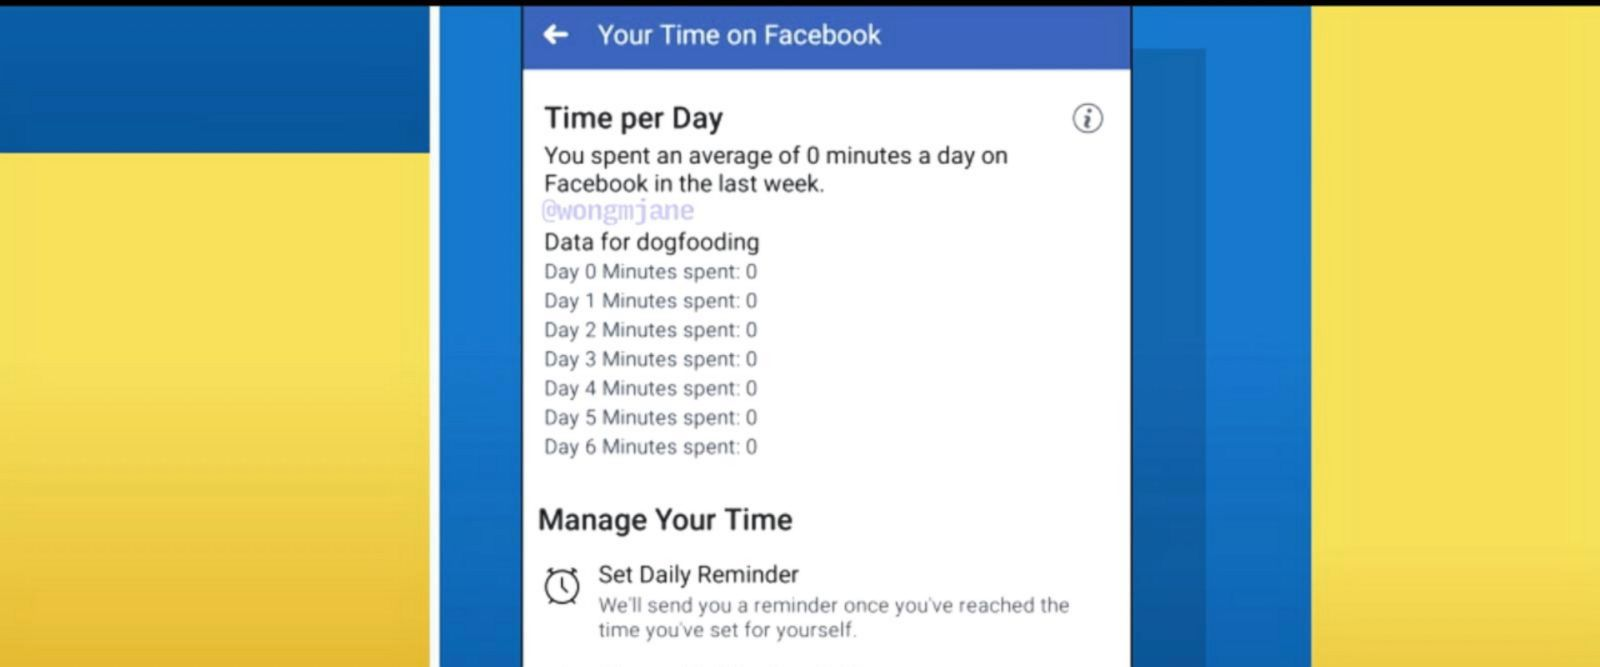 VIDEO: Hidden Facebook feature allows users to monitor time spent on Facebook